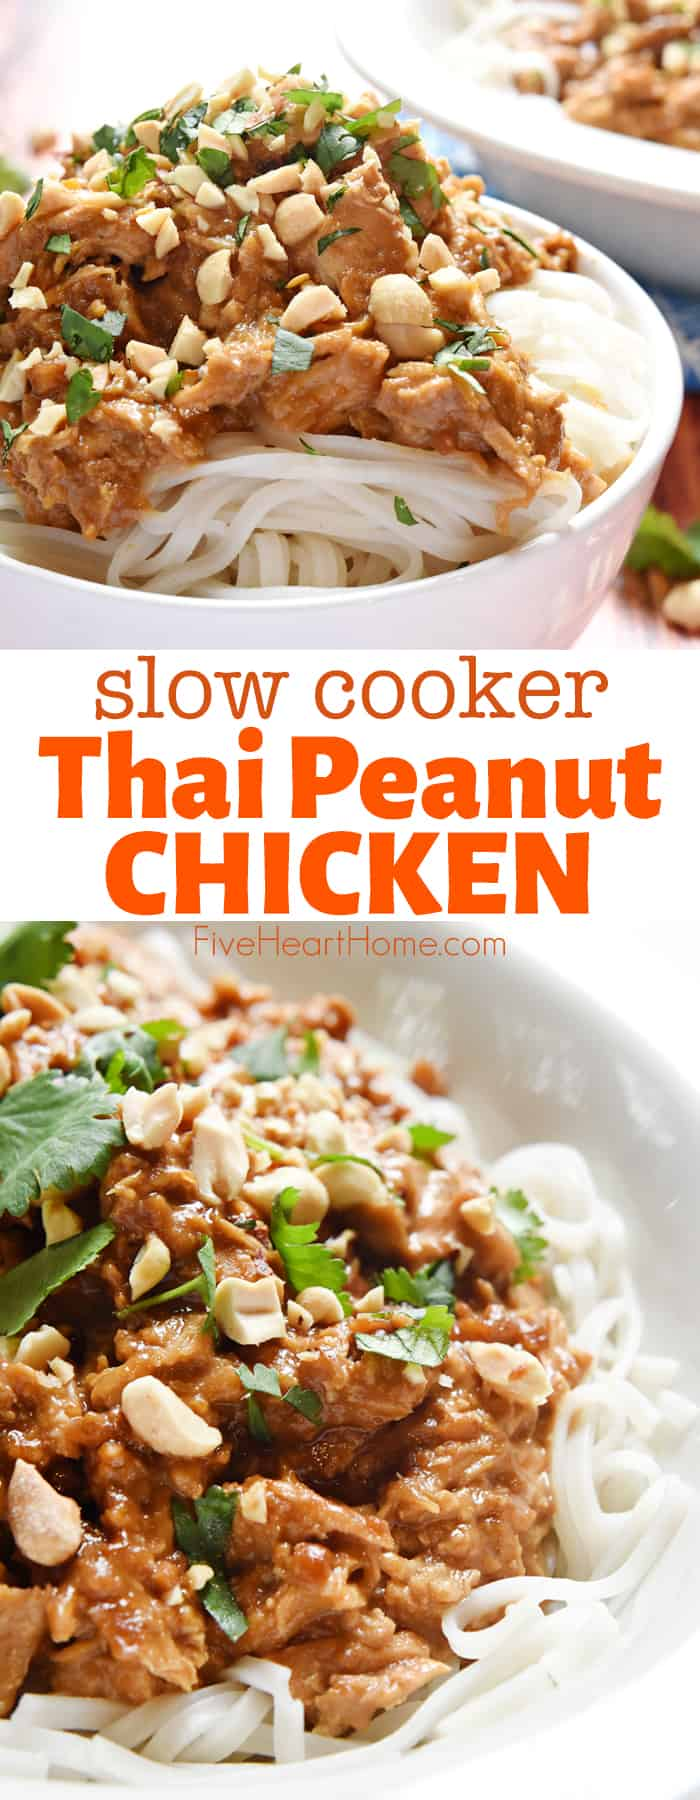 Slow Cooker Thai Peanut Chicken ~ made in the crockport, this easy dinner recipe features tender chicken stewed in a flavorful coconut milk and peanut sauce, served over rice or rice noodles! | FiveHeartHome.com #thaipeanutchicken #thaichicken #peanutchicken via @fivehearthome